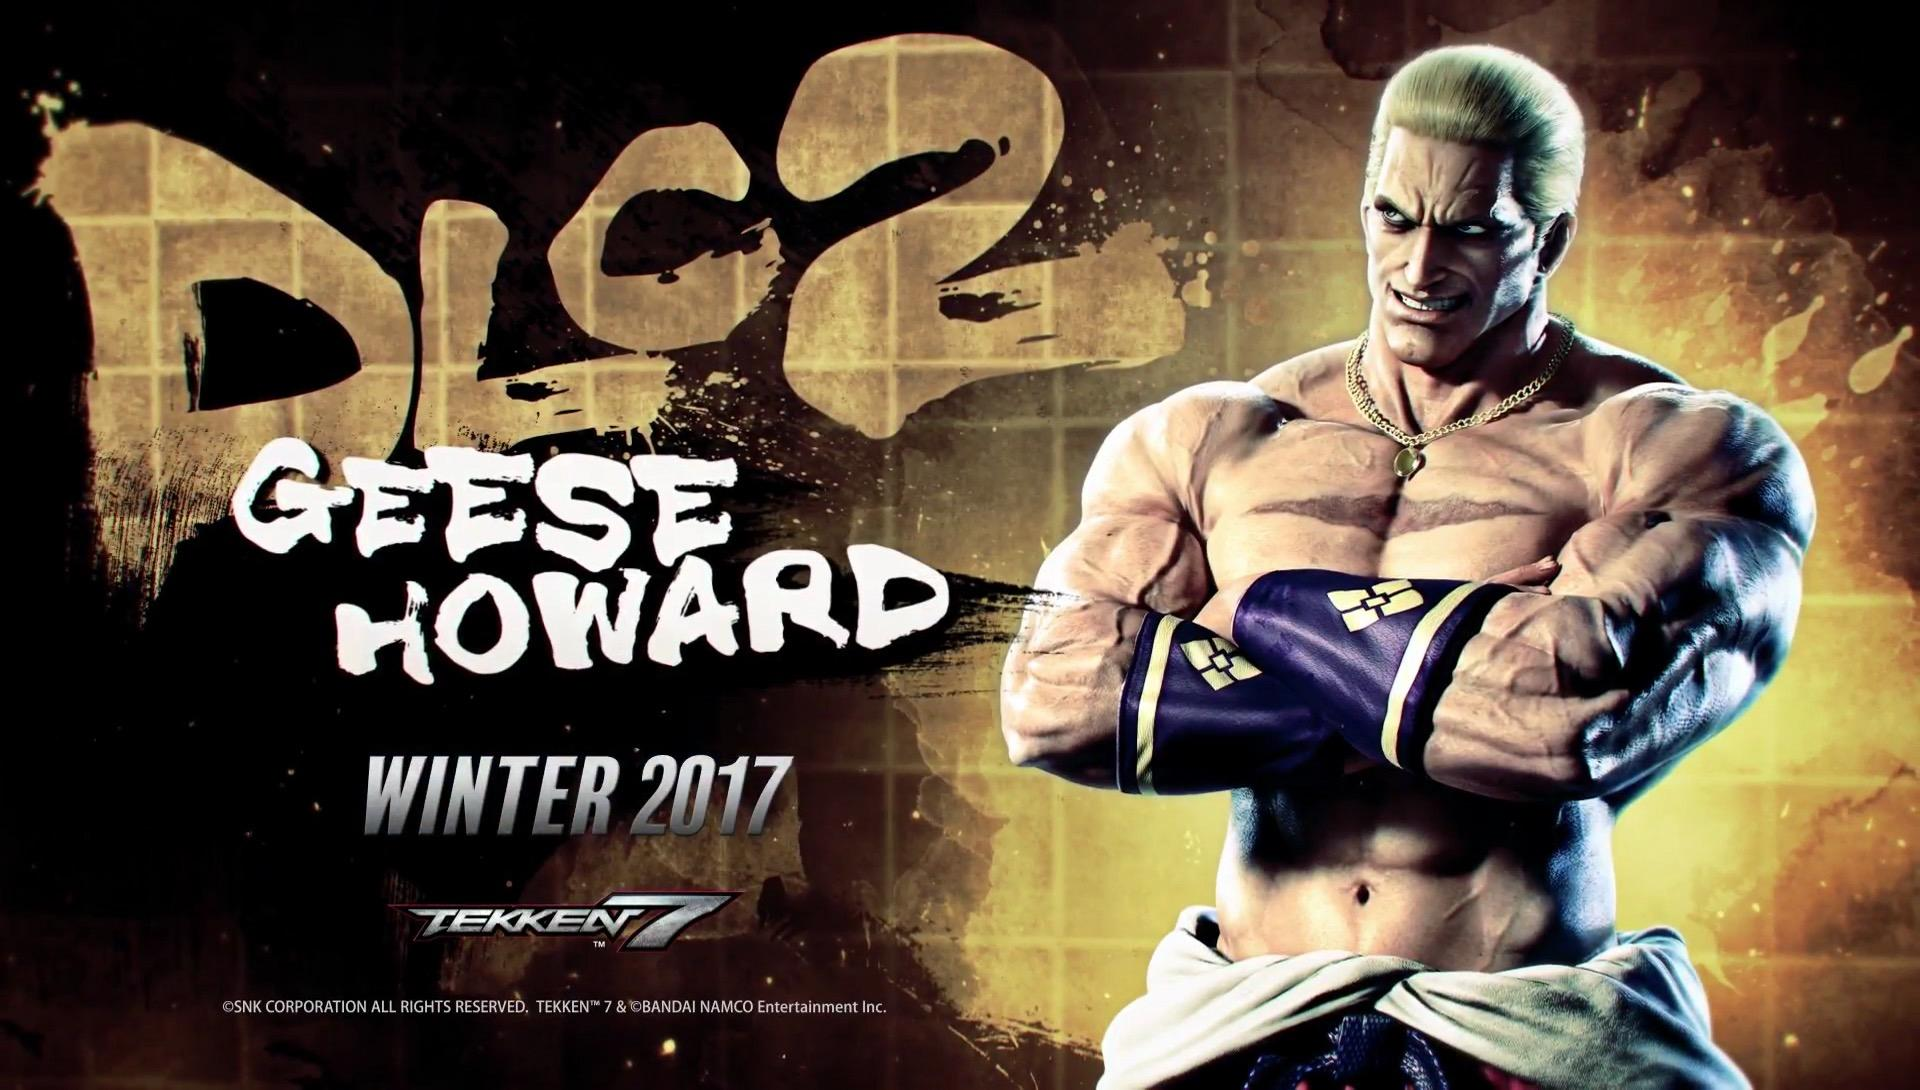 Fatal Fury's Geese Howard is Coming to Tekken 7 This Winter